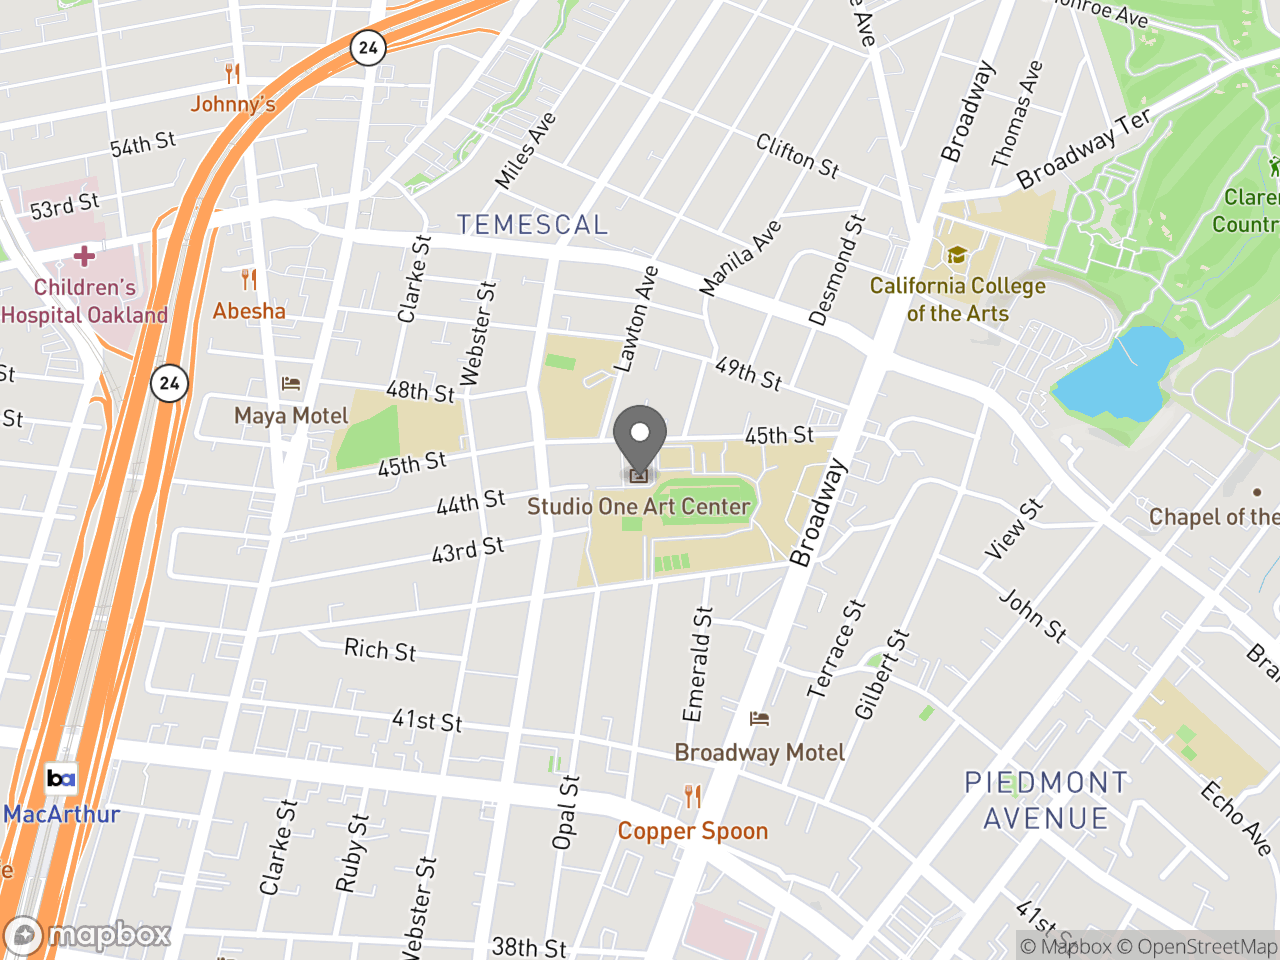 Map location for Studio One Art Center, located at 365 45th St in Oakland, CA 94609